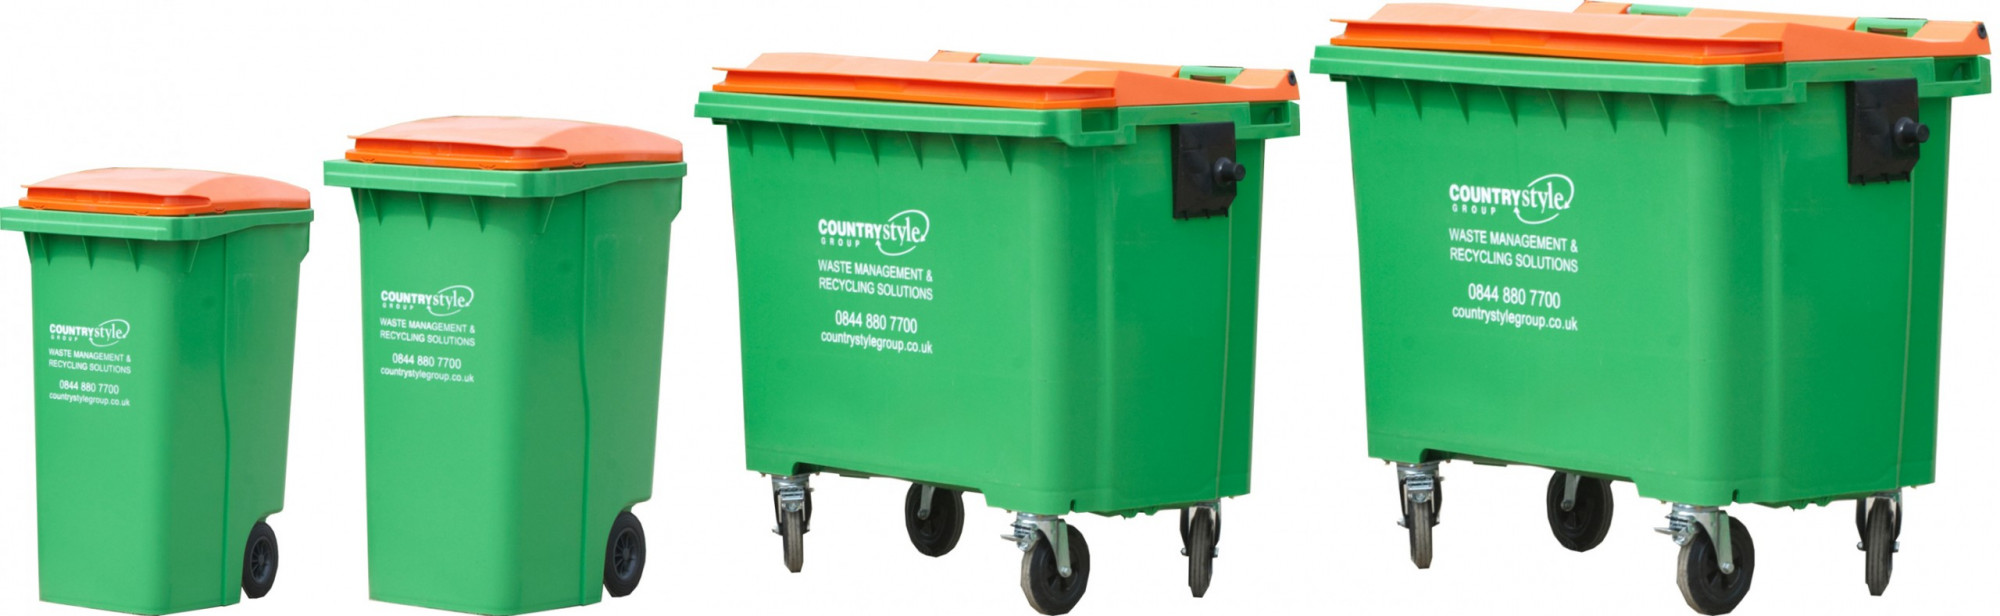 Countrystyle Recycling - Wheelie Bin Collection